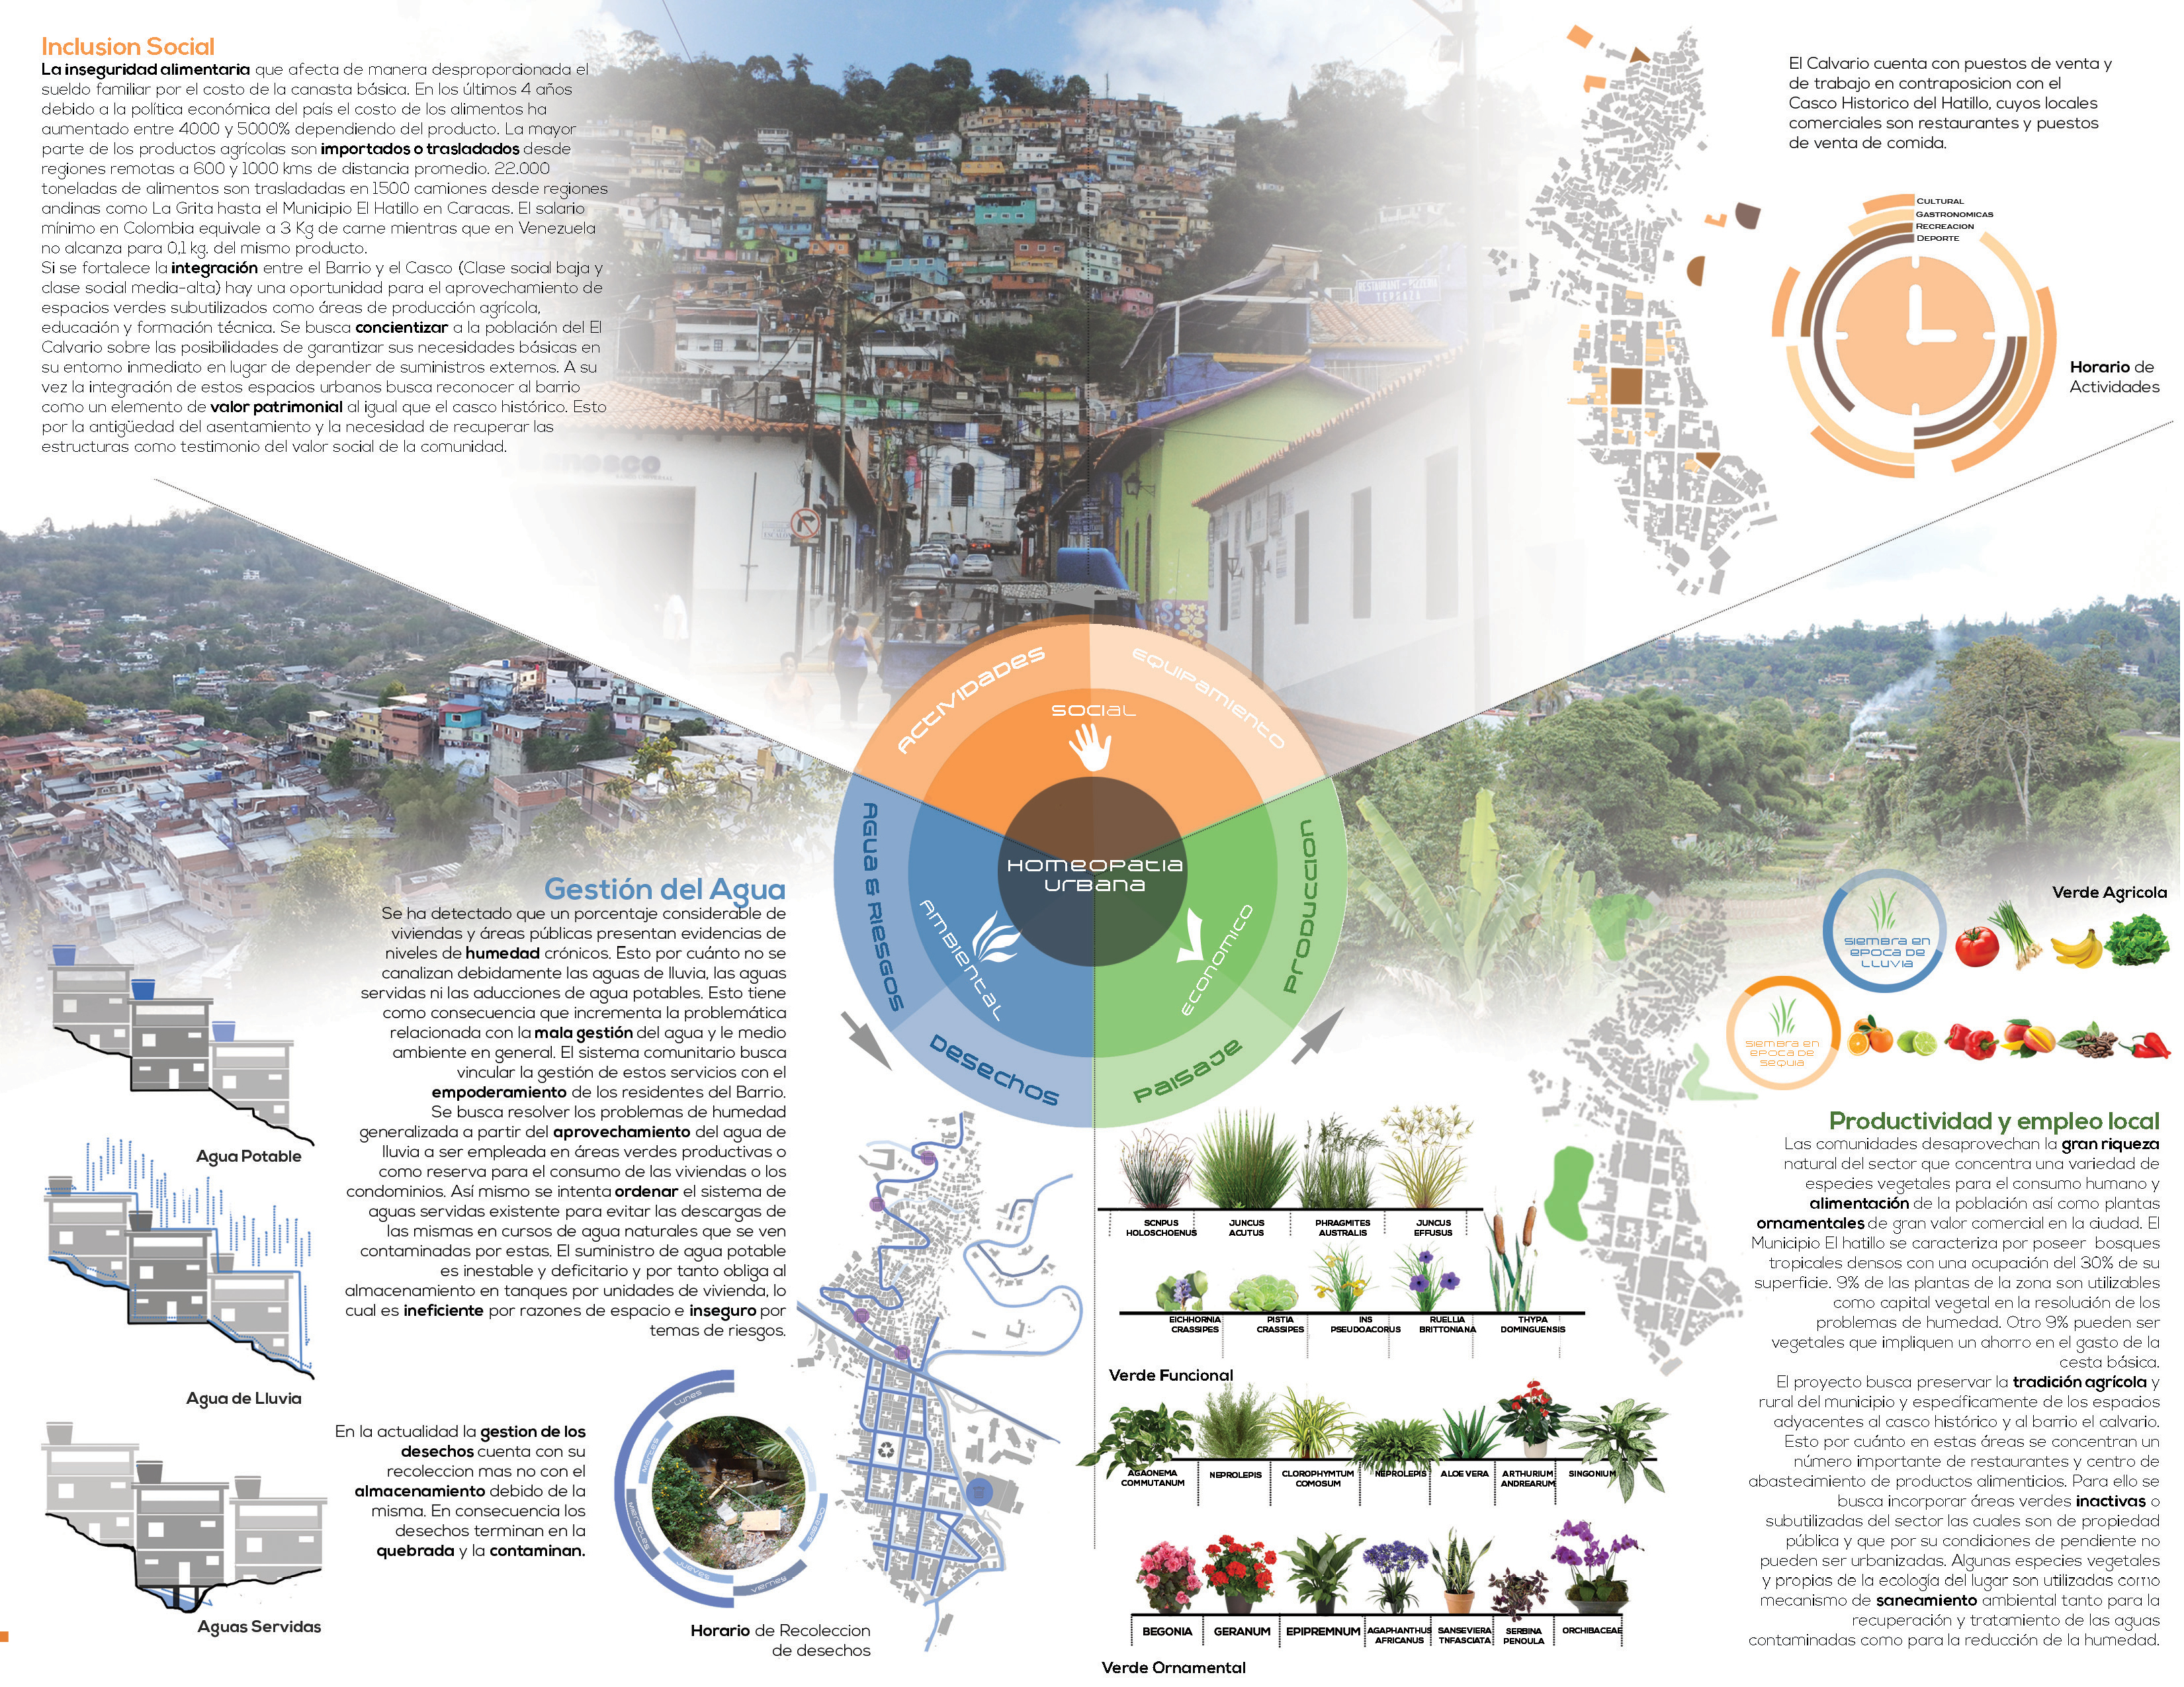 The Synthesis of Sustainability